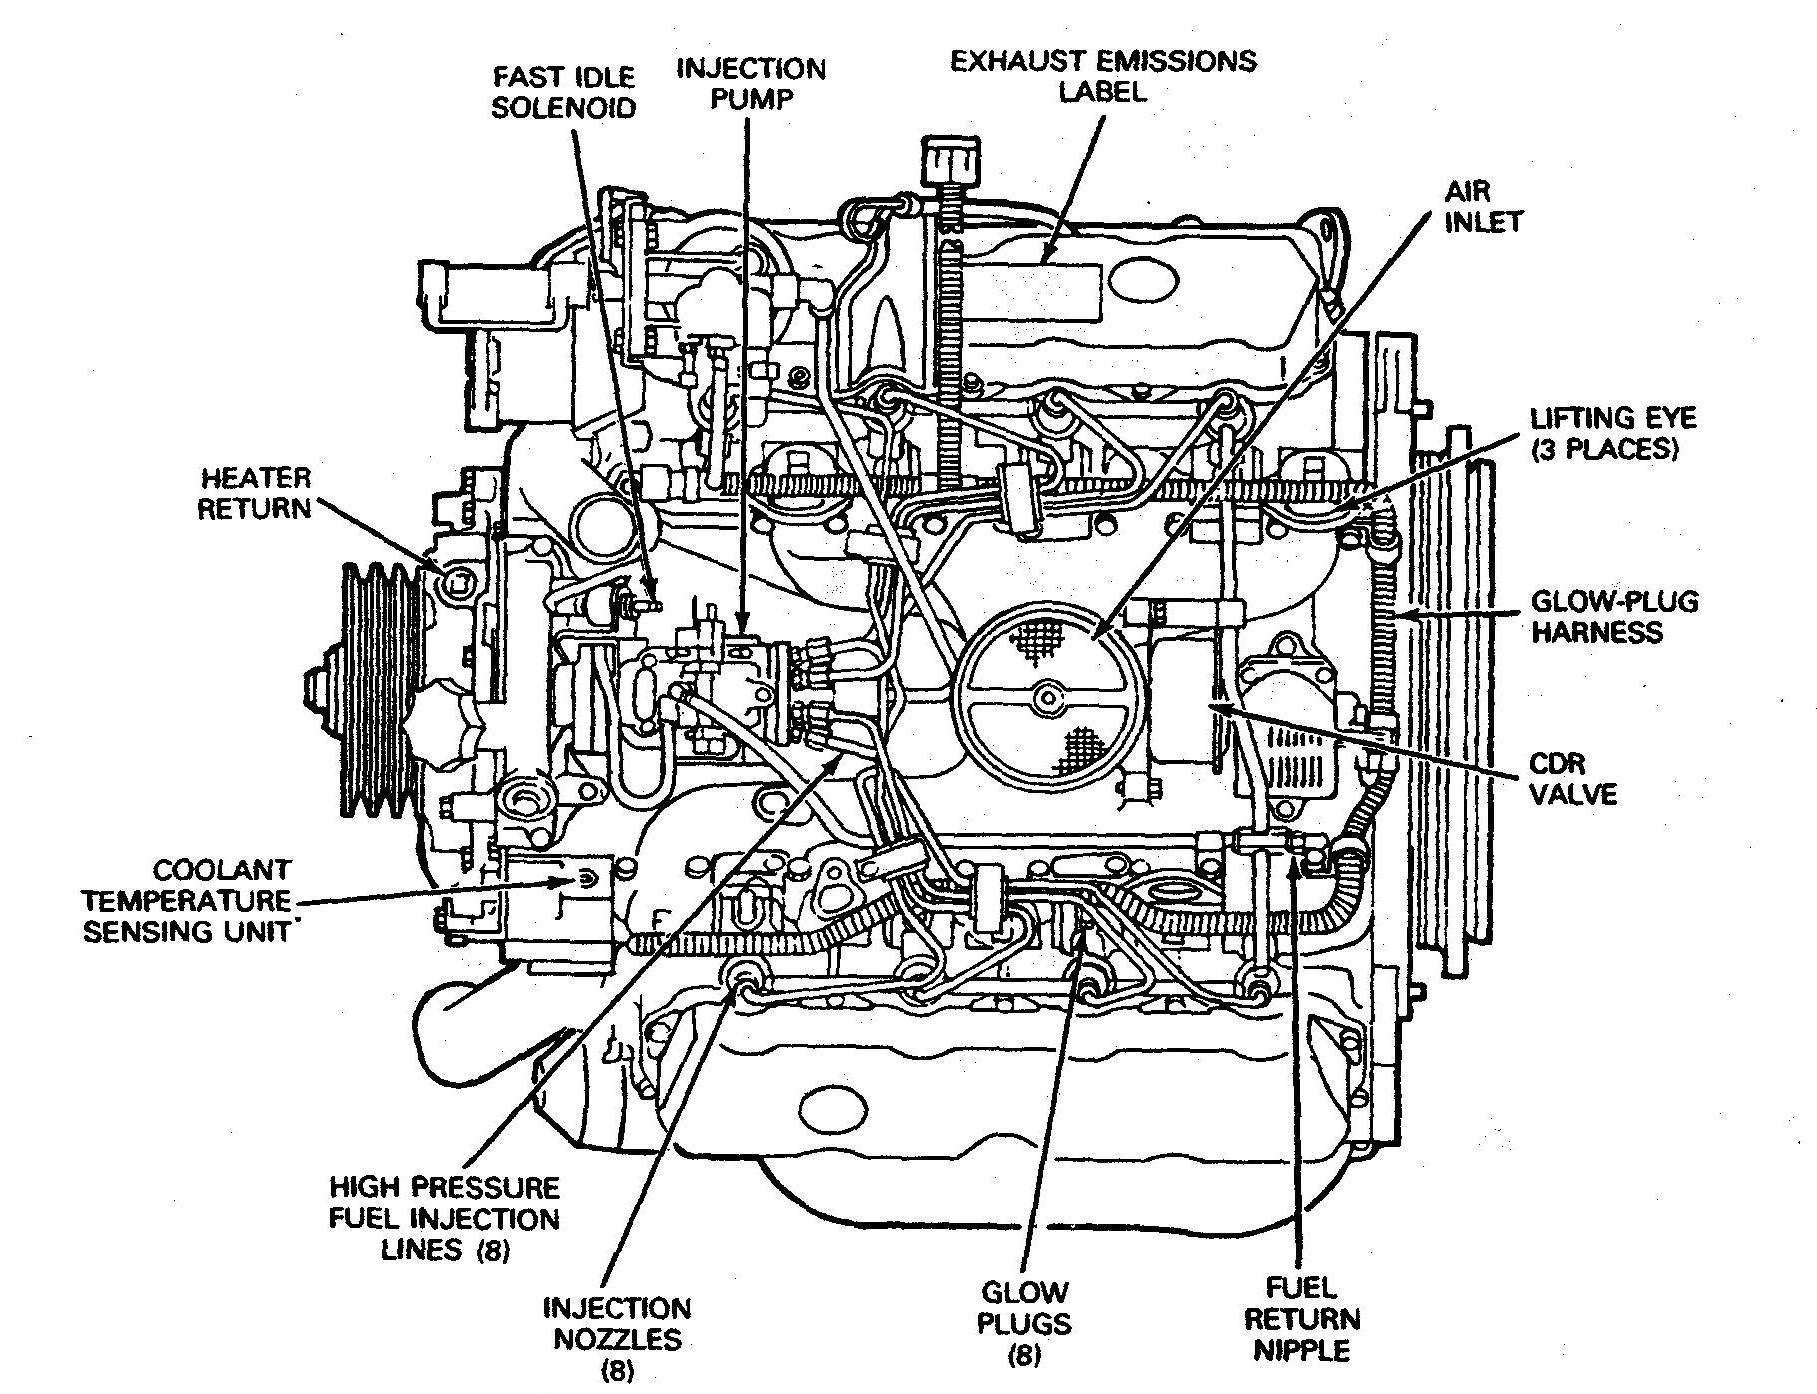 Basic Engine Diagram V8 Another Wiring Diagrams Cutaway And Jet Drive 350 Chevy Parts